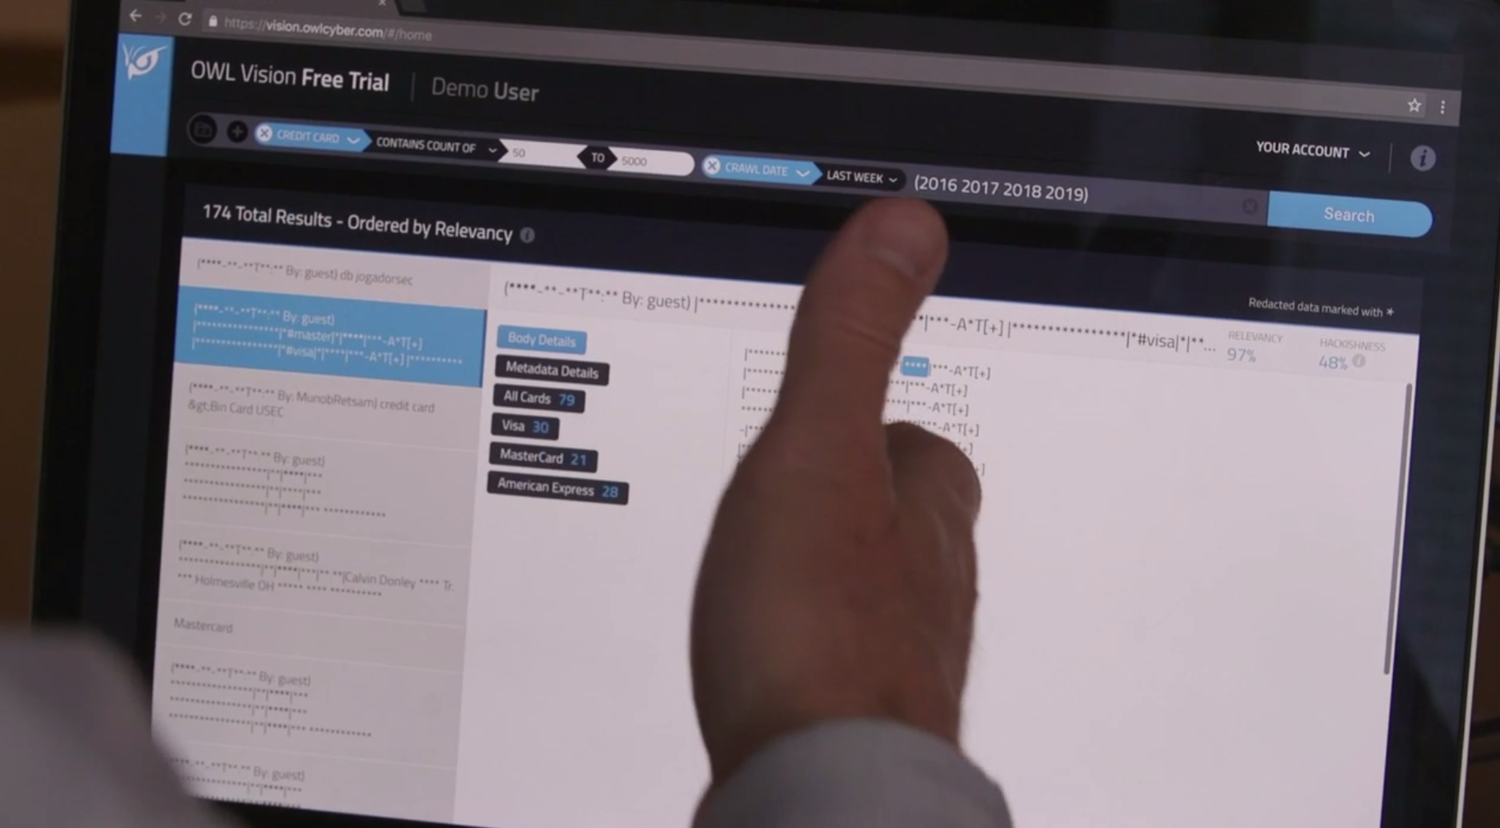 OWL Cybersecurity CEO Mark Turnage demos the OWL Vision darknet big data platform for The Denver Post.